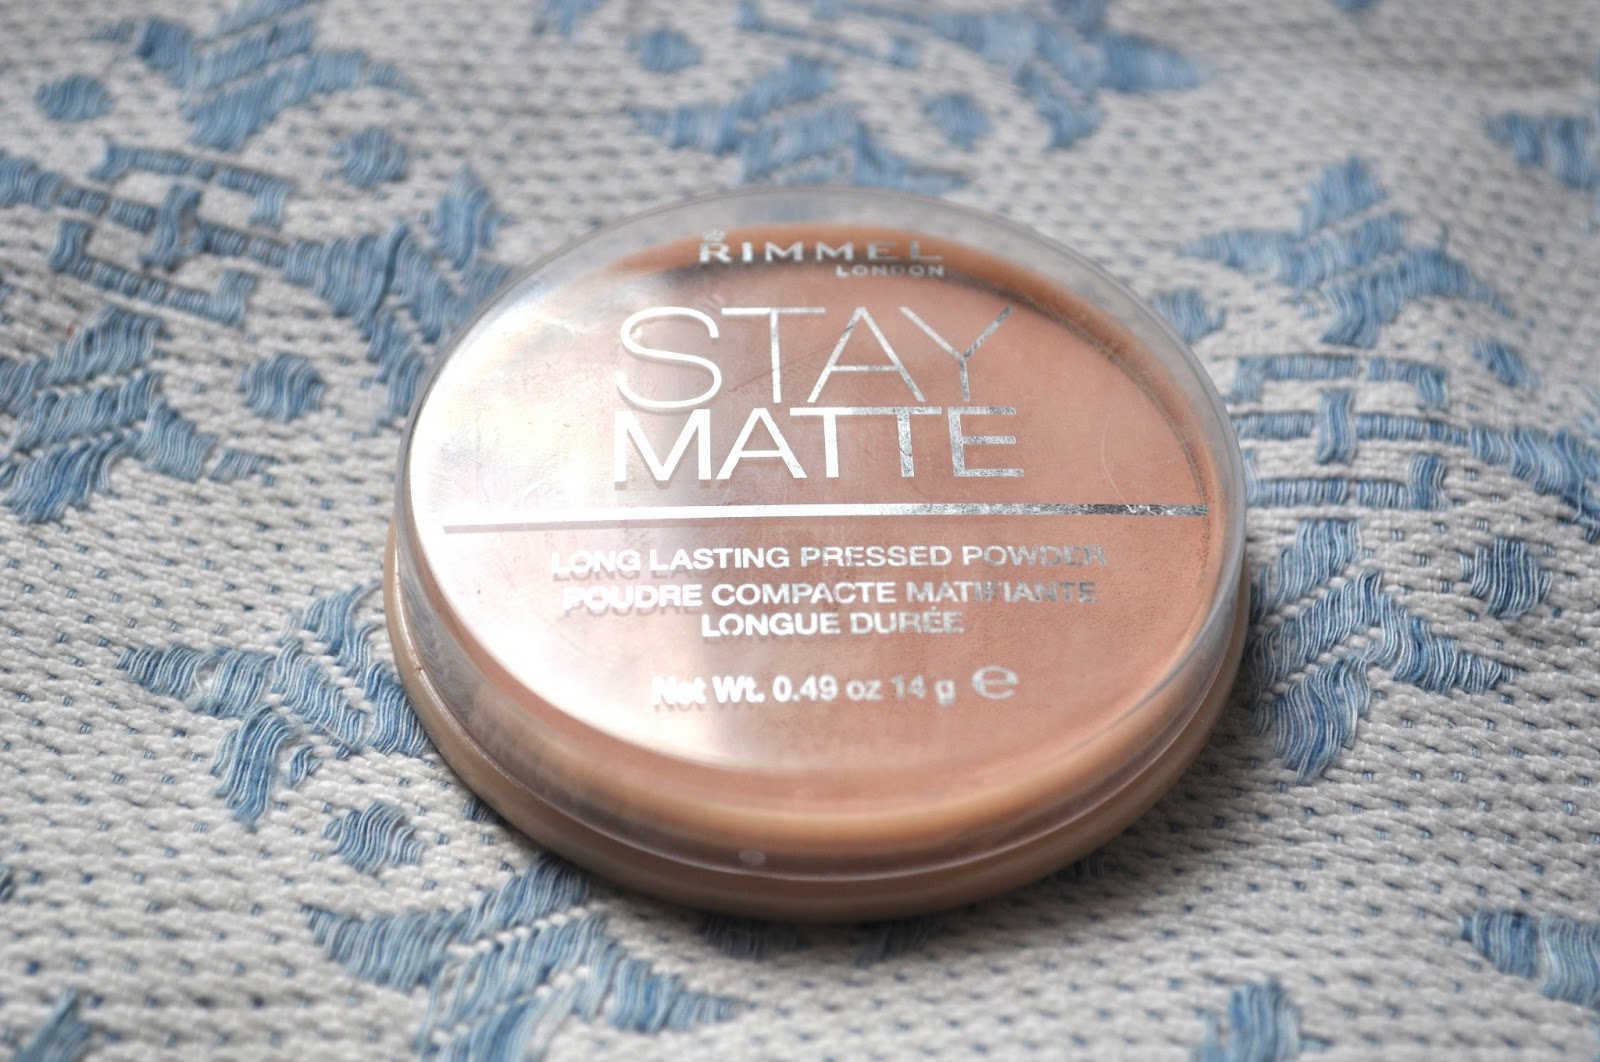 Pretty Perks 20 Rimmel London Stay Matte Pressed Powder Life I Usually Just Use A Great Bit Swish Of This As Finishing Touch To My Everyday Makeup Creating Flawless Complextion And Hide Those Annoying